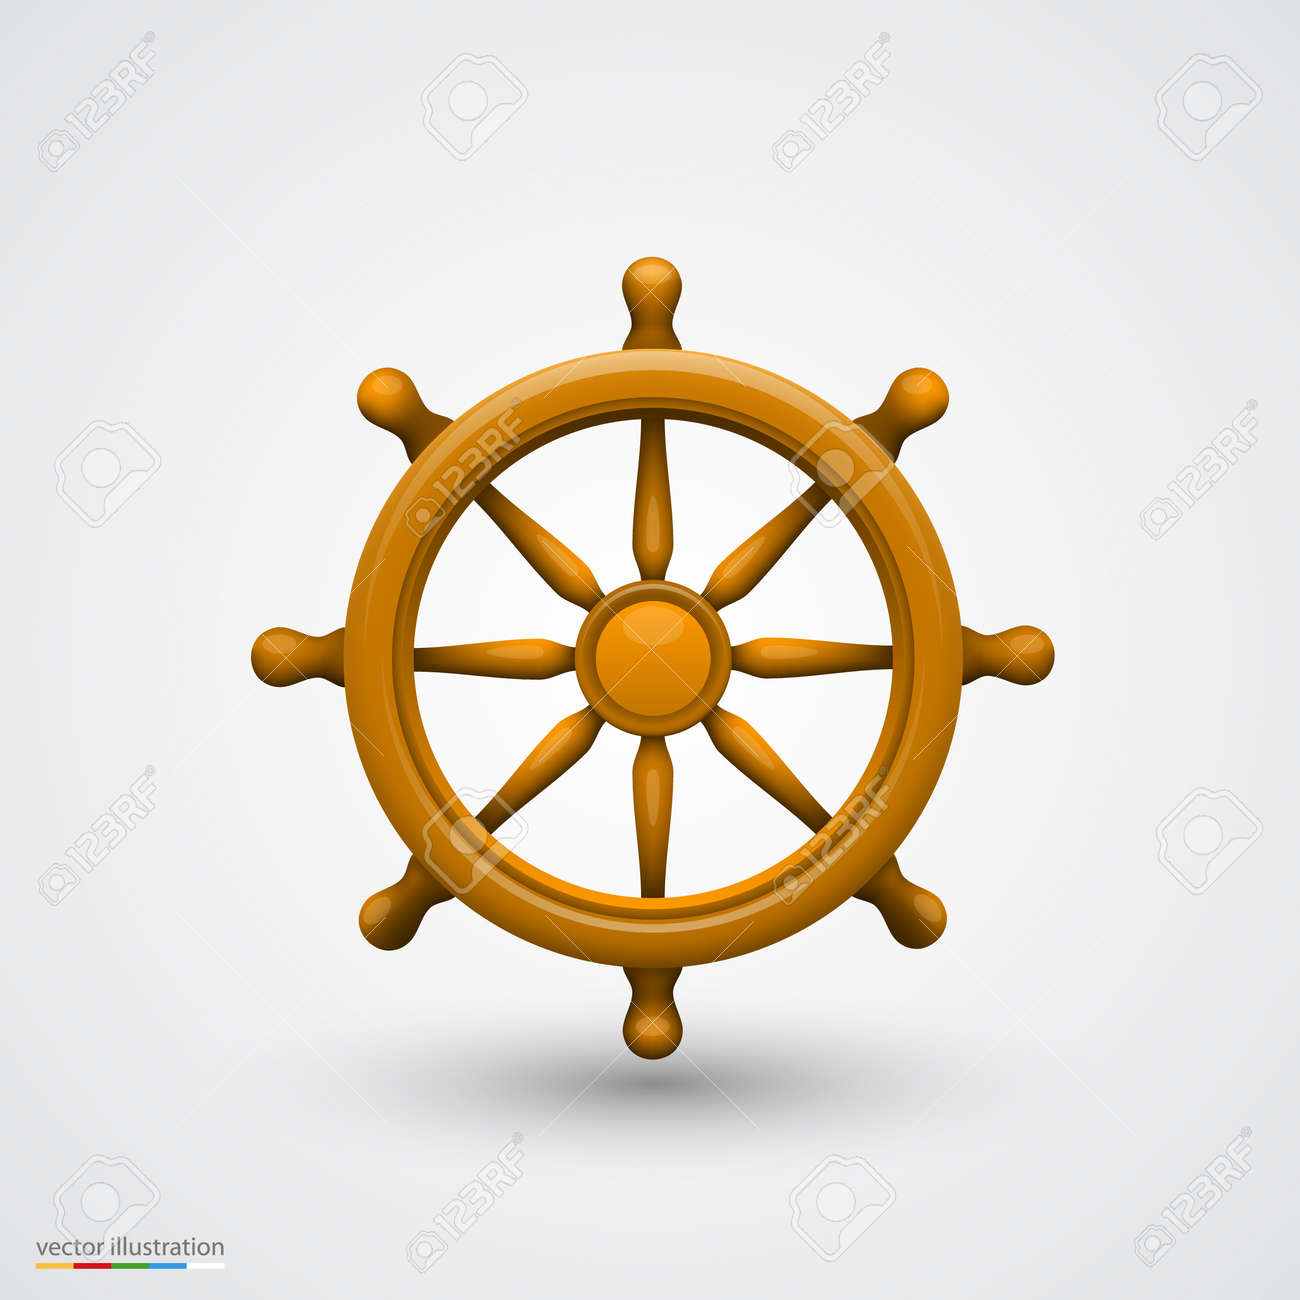 Wooden Ship Wheel Art Object Vector Illustration Royalty Free Cliparts Vectors And Stock Illustration Image 35951435